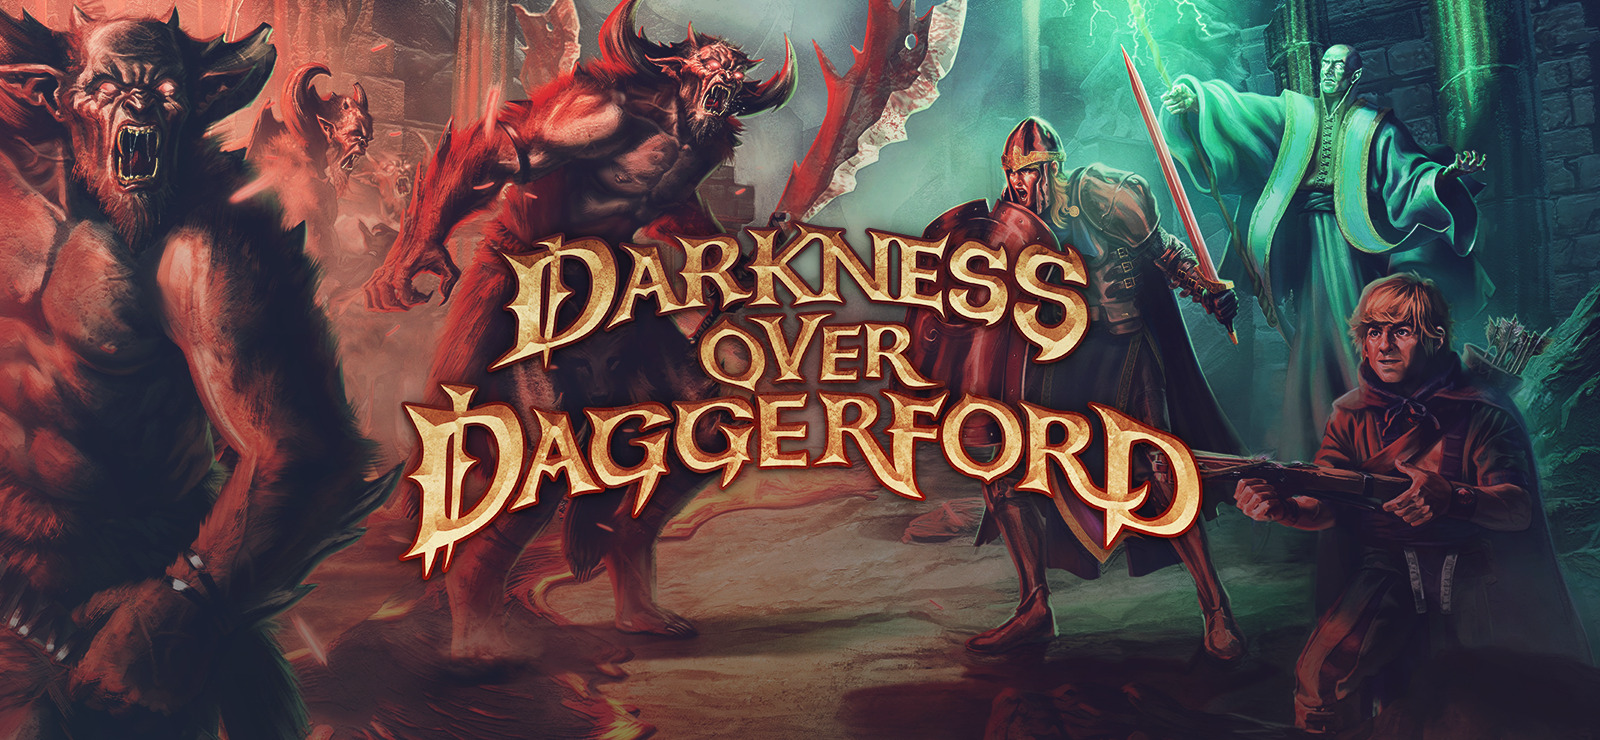 Neverwinter Nights: Darkness over Daggerford